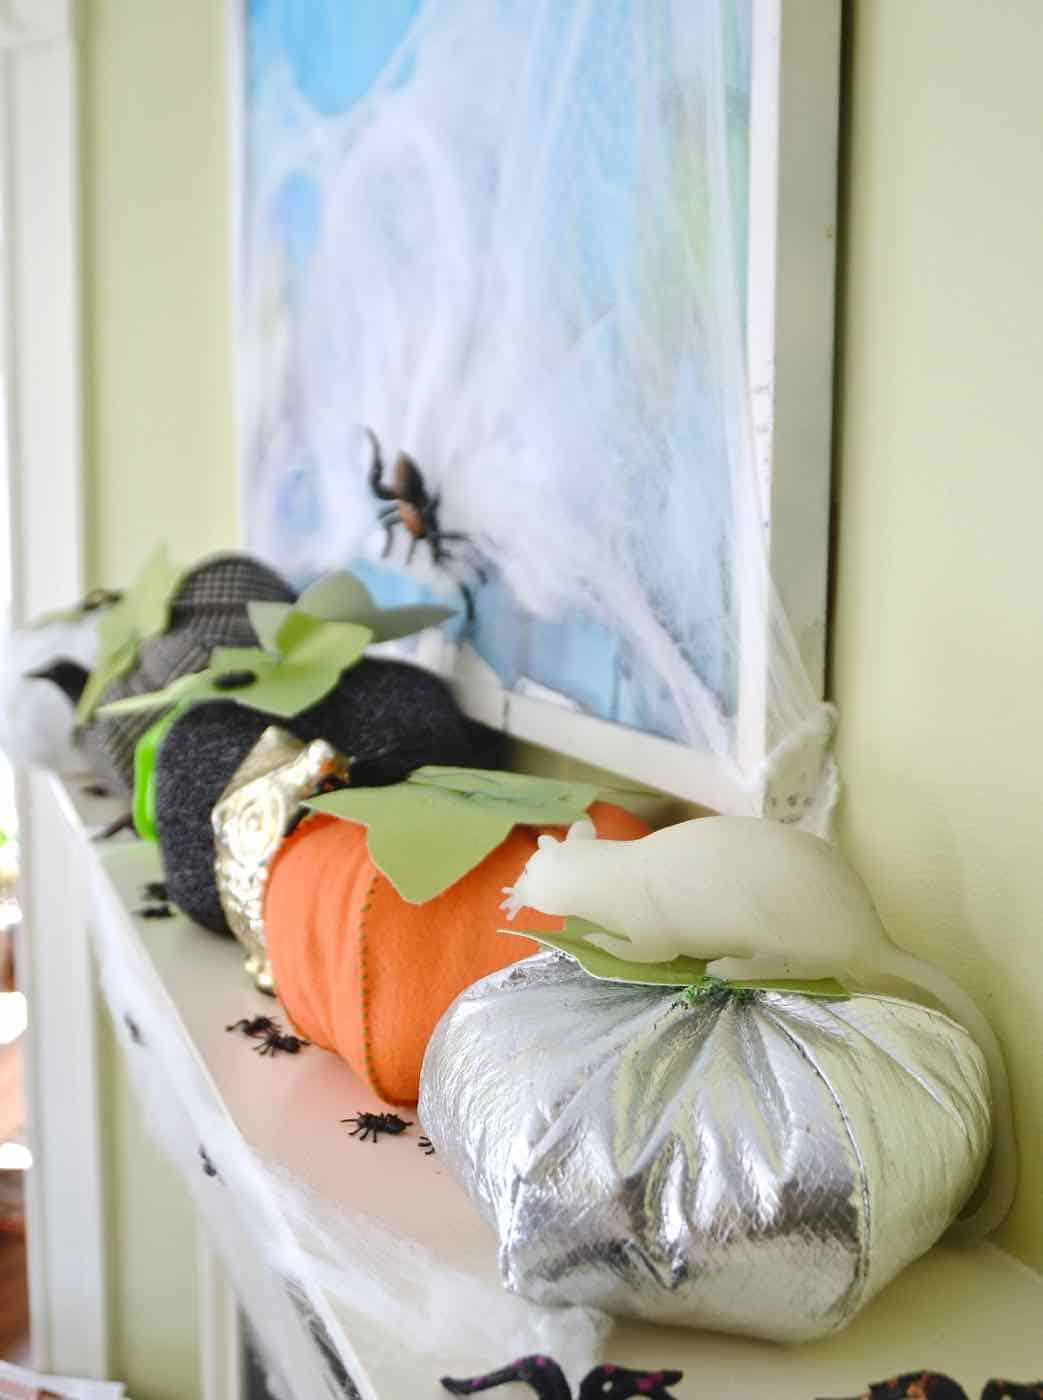 Stuffed pumpkins made from scrap fabric all ready for Halloween decor.